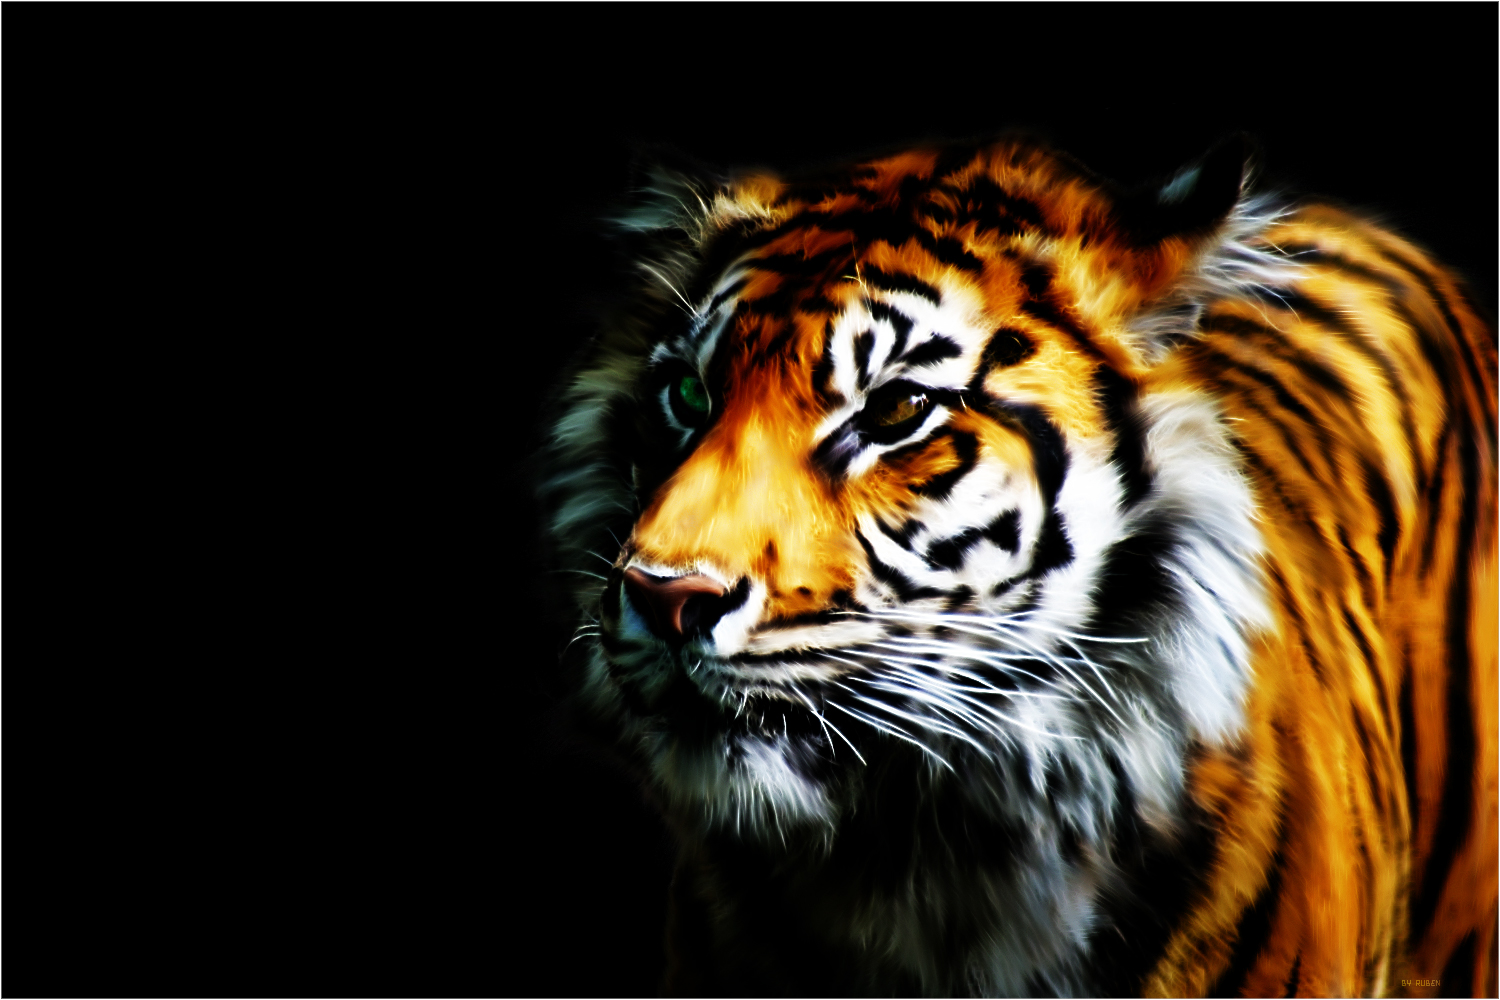 real tigers wallpaper 3d full hd 4k free | top model hairstyle